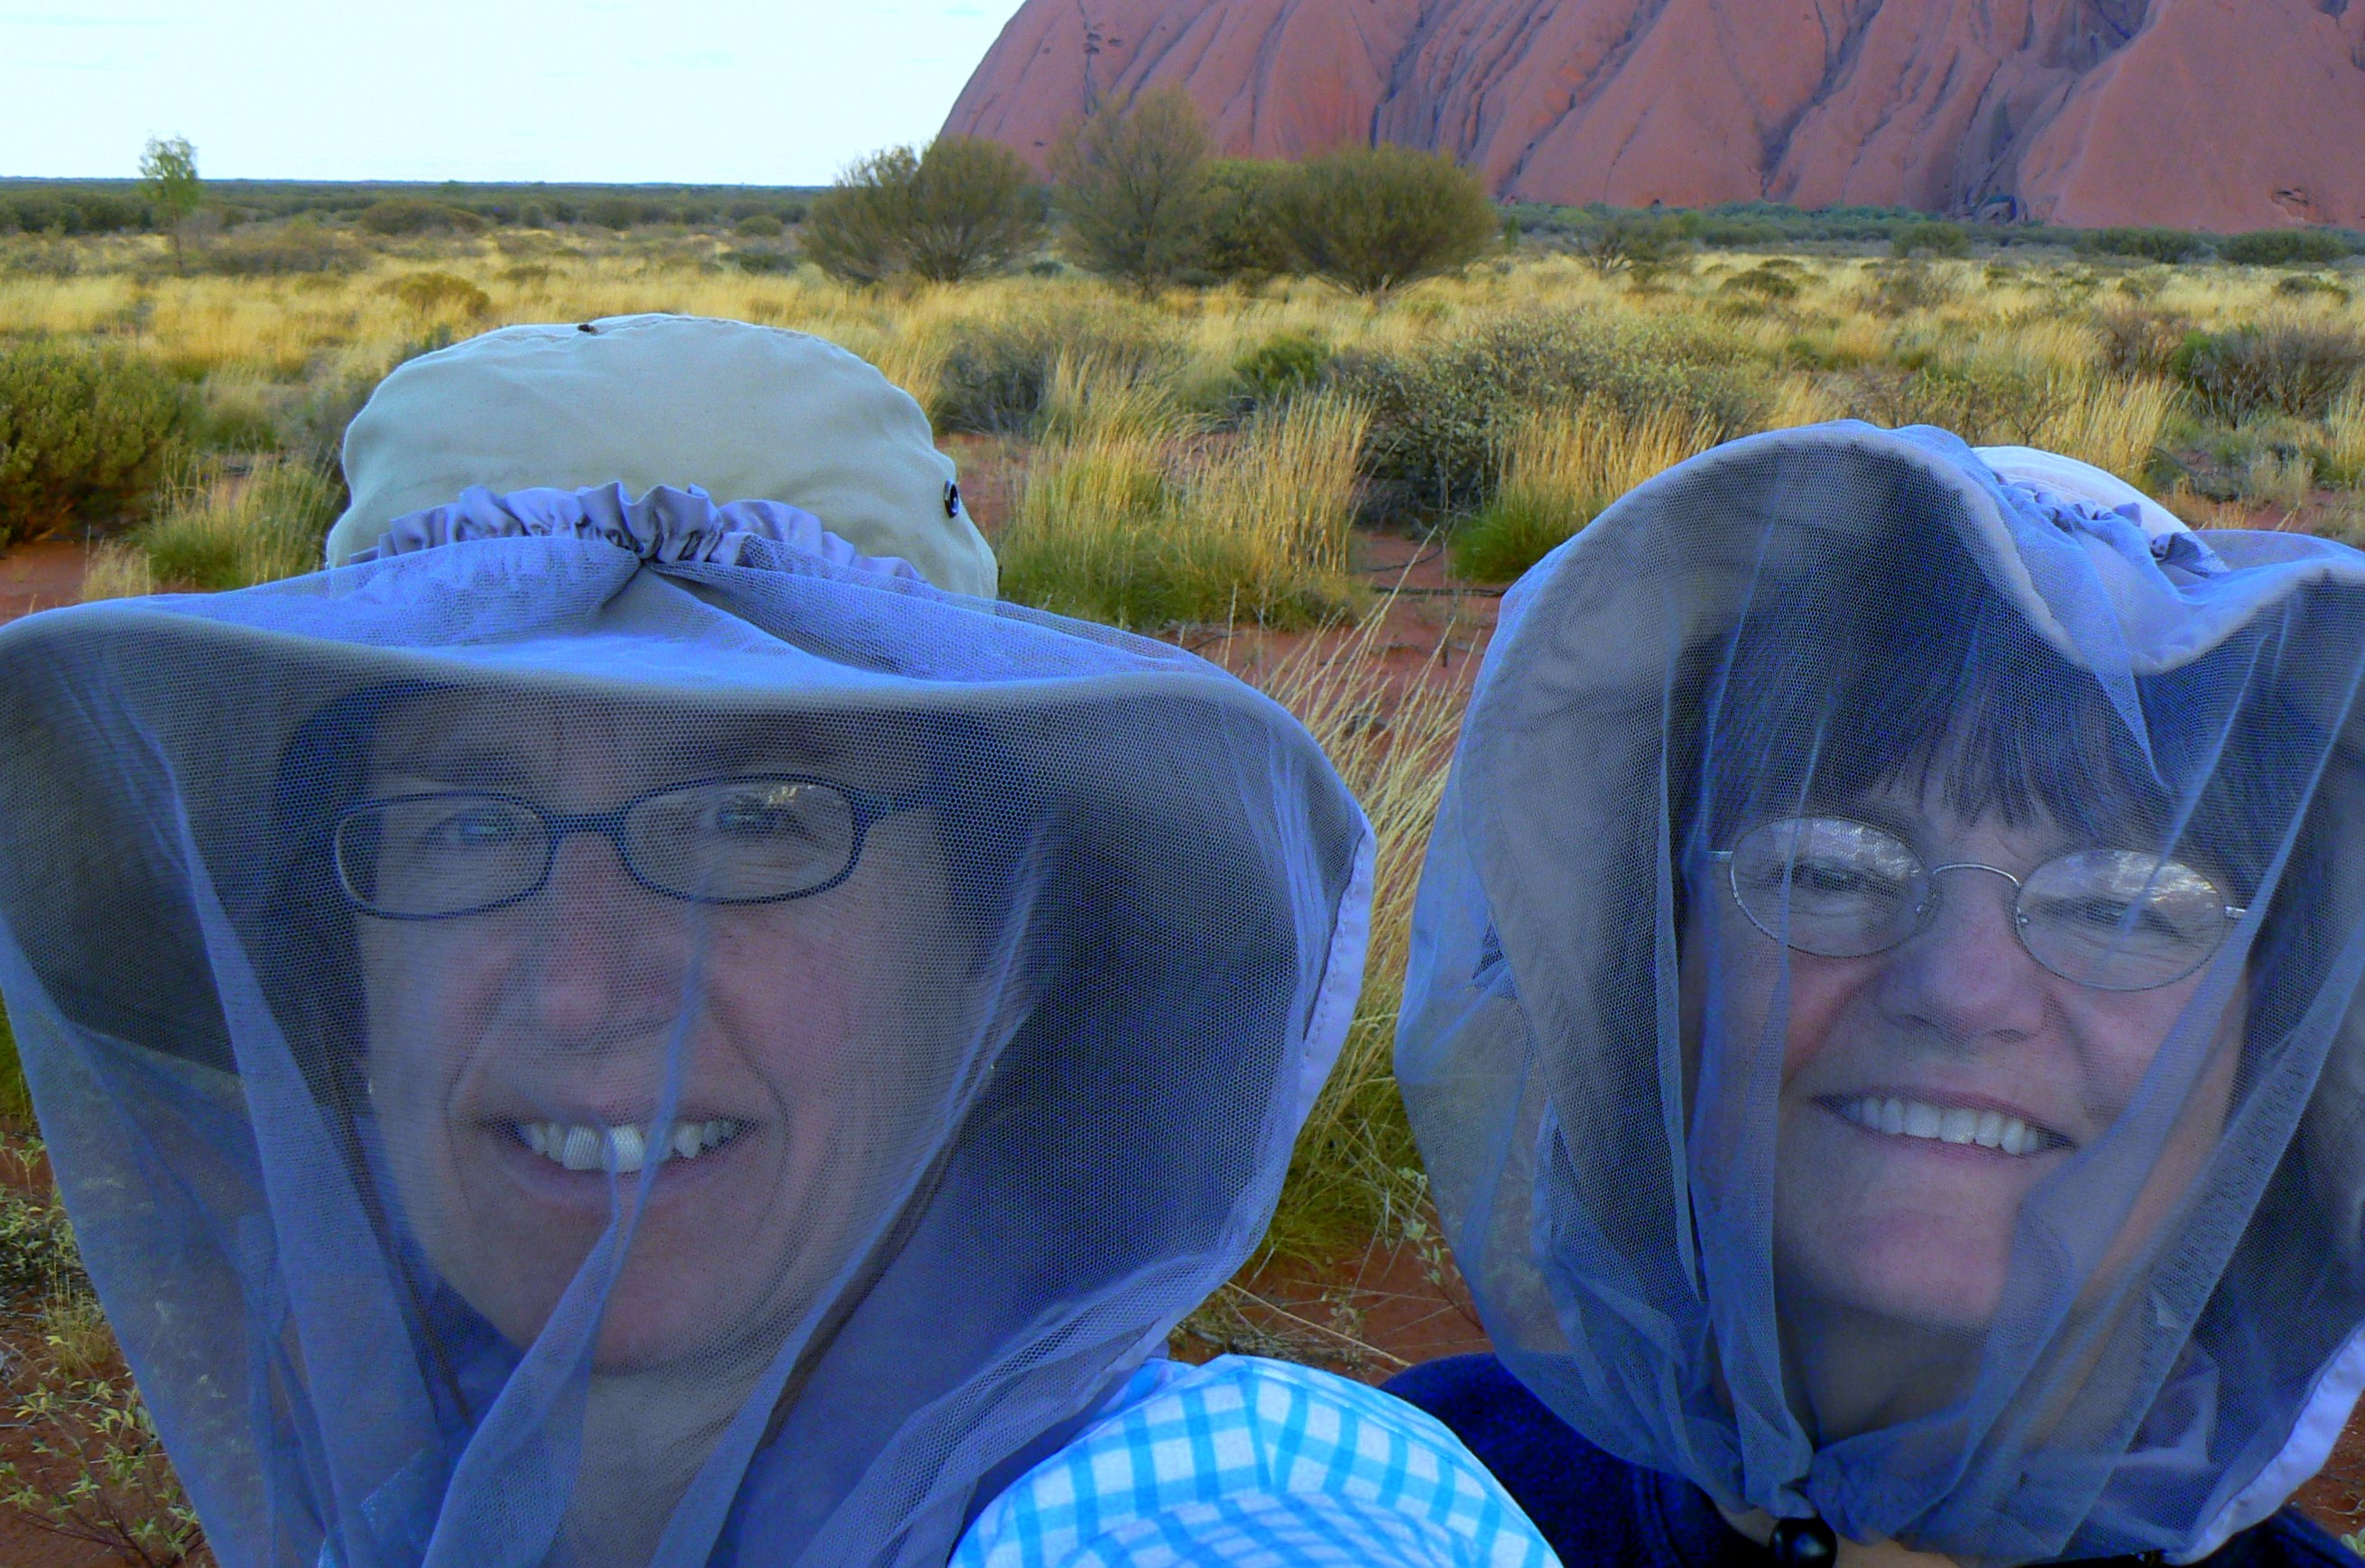 Wearing Netting at Uluru